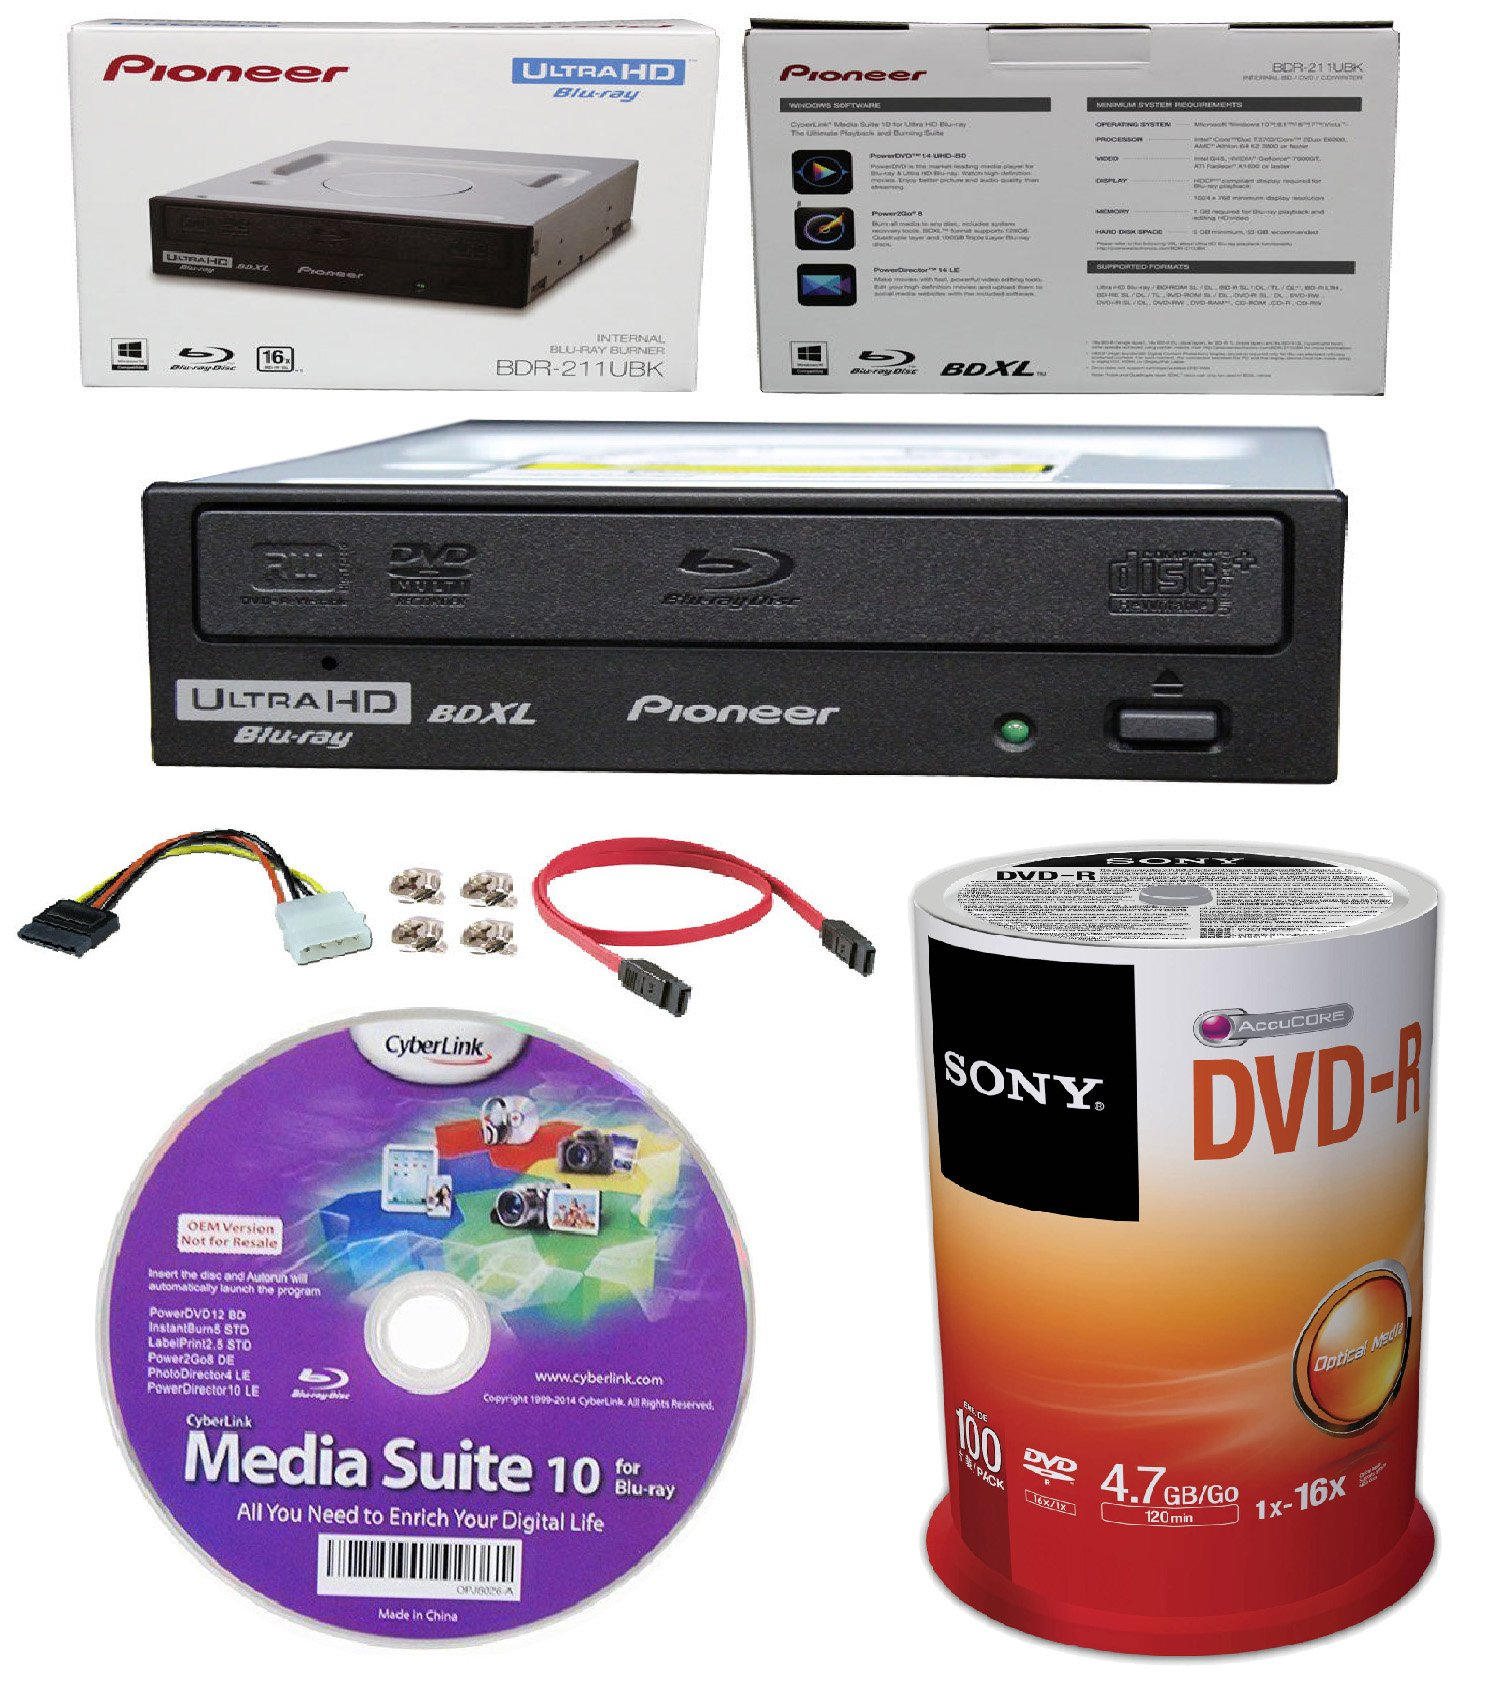 Pioneer 16x BDR-211UBK Internal Ultra HD Blu-ray BDXL Burner, Cyberlink Software and Cable Accessories Bundle with 100pk DVD-R Sony Accucore 4.7GB 16X Recordable Media